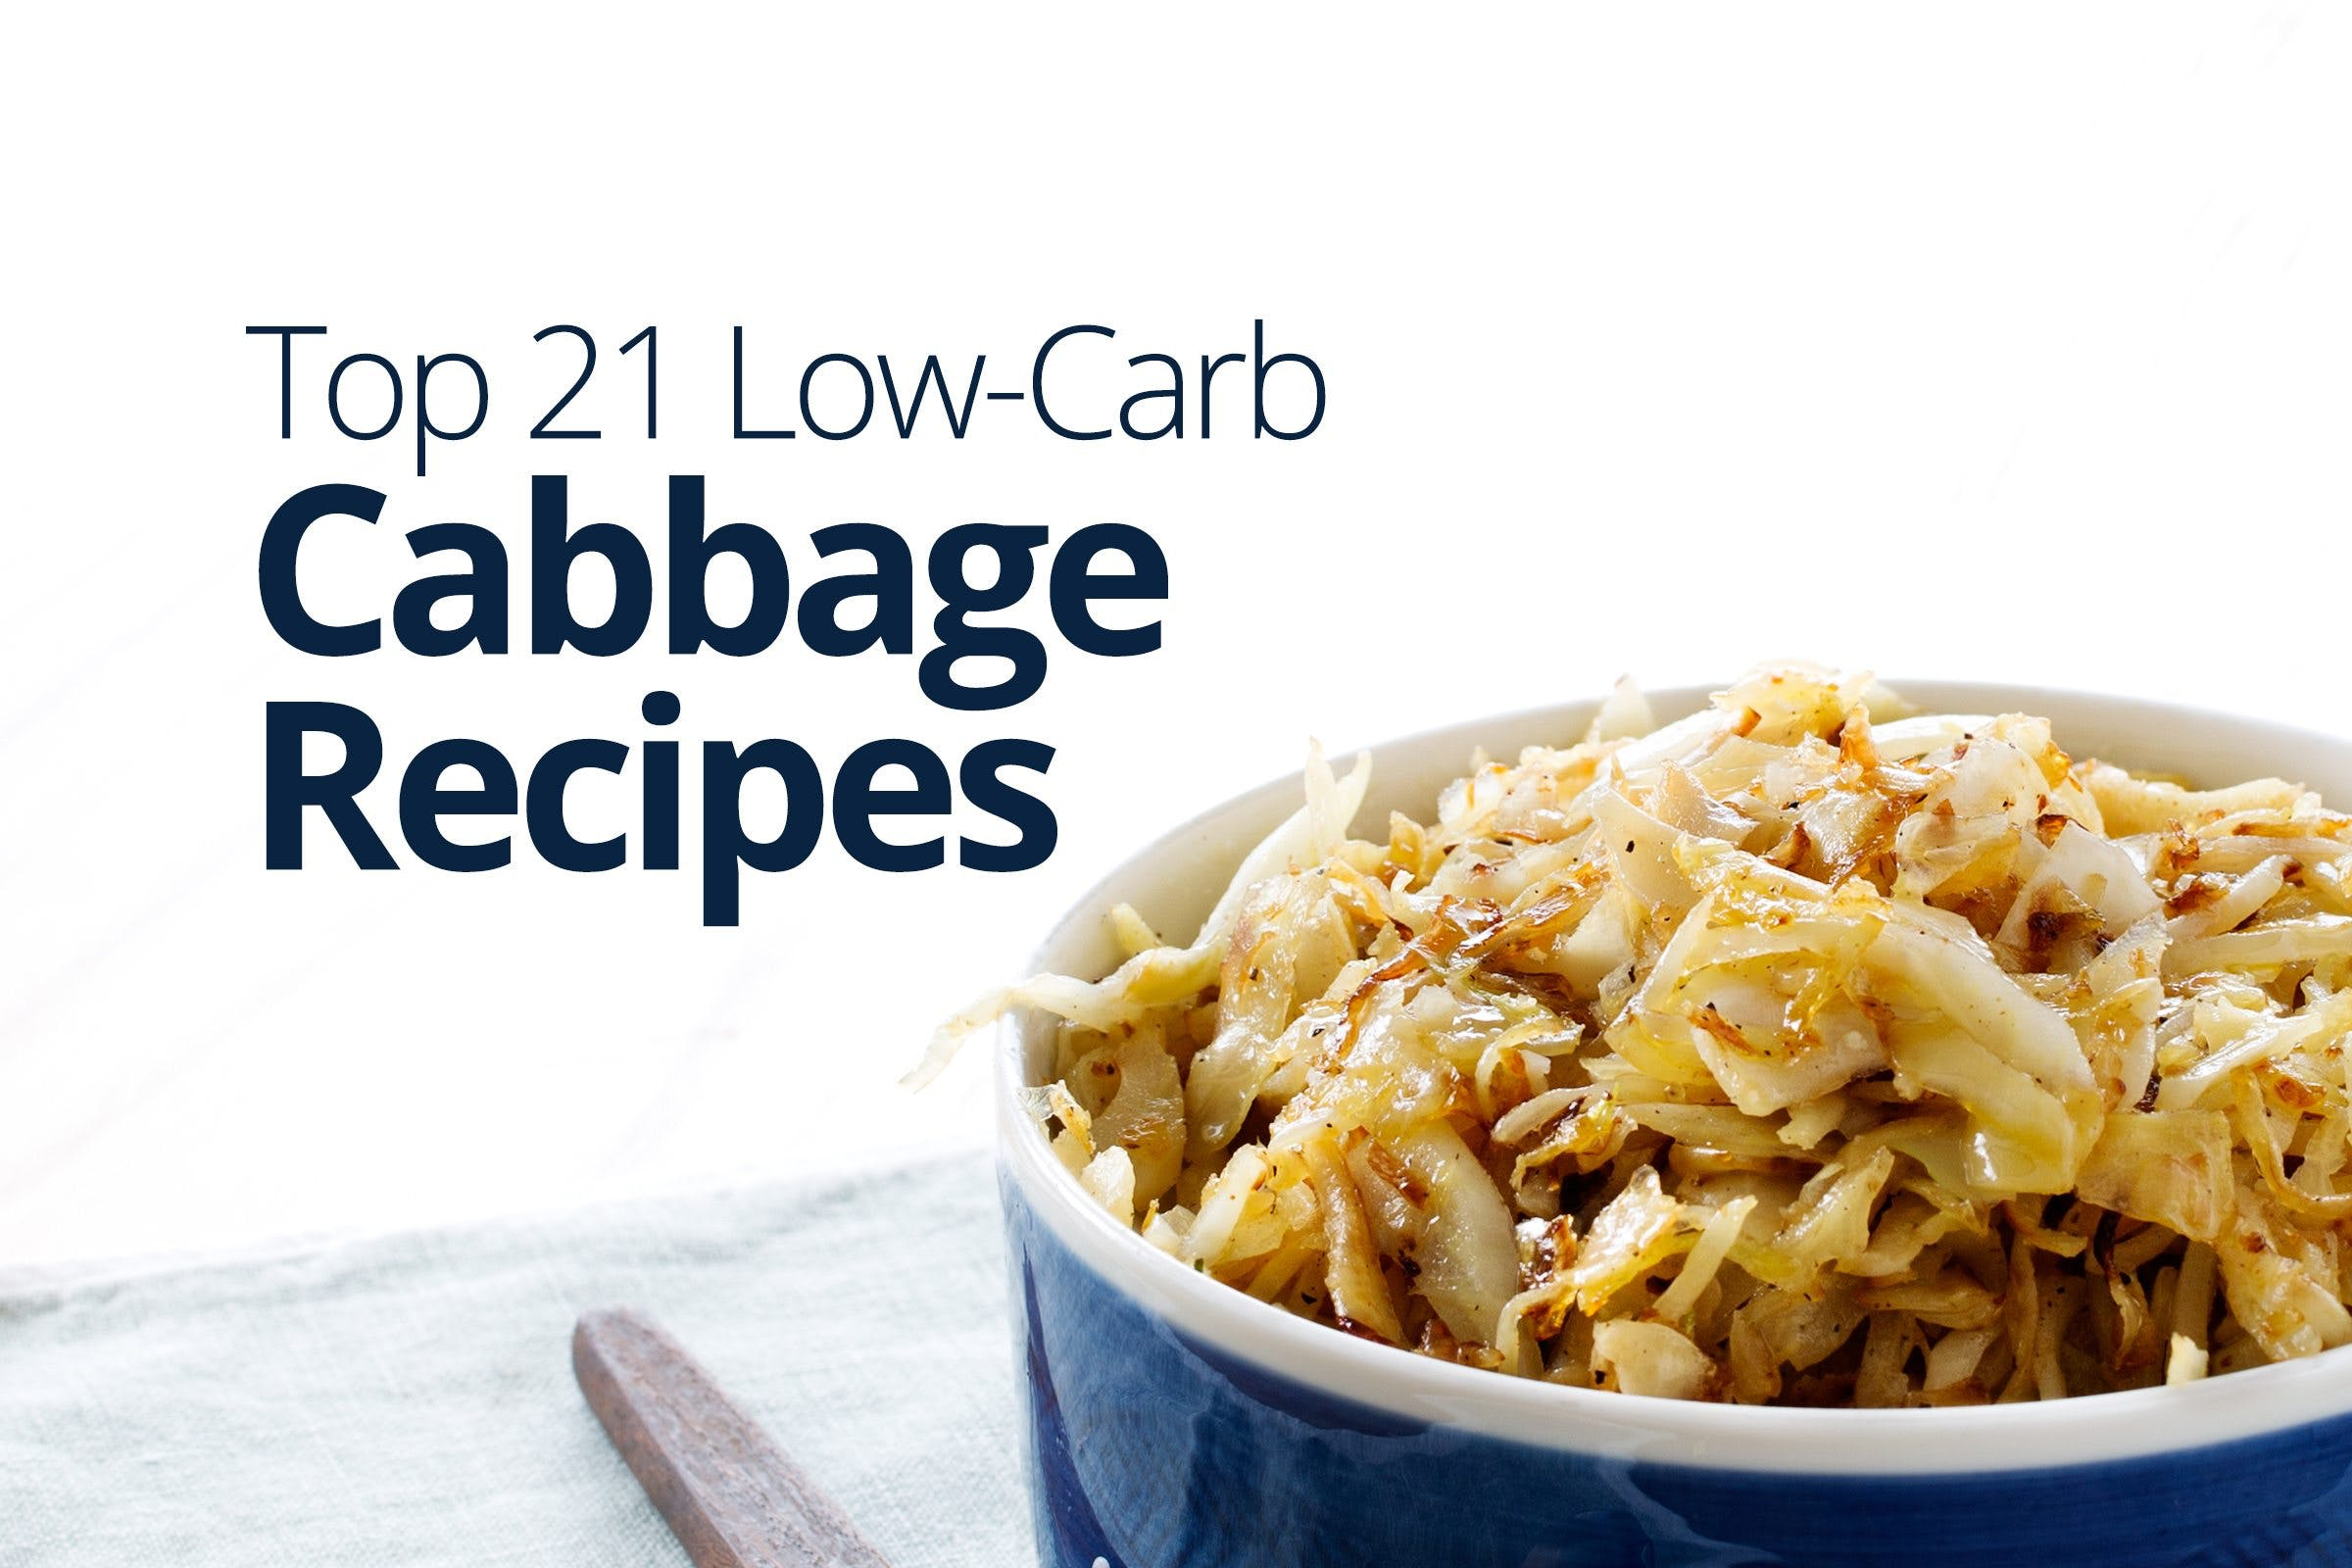 Top low-carb and keto cabbage recipes